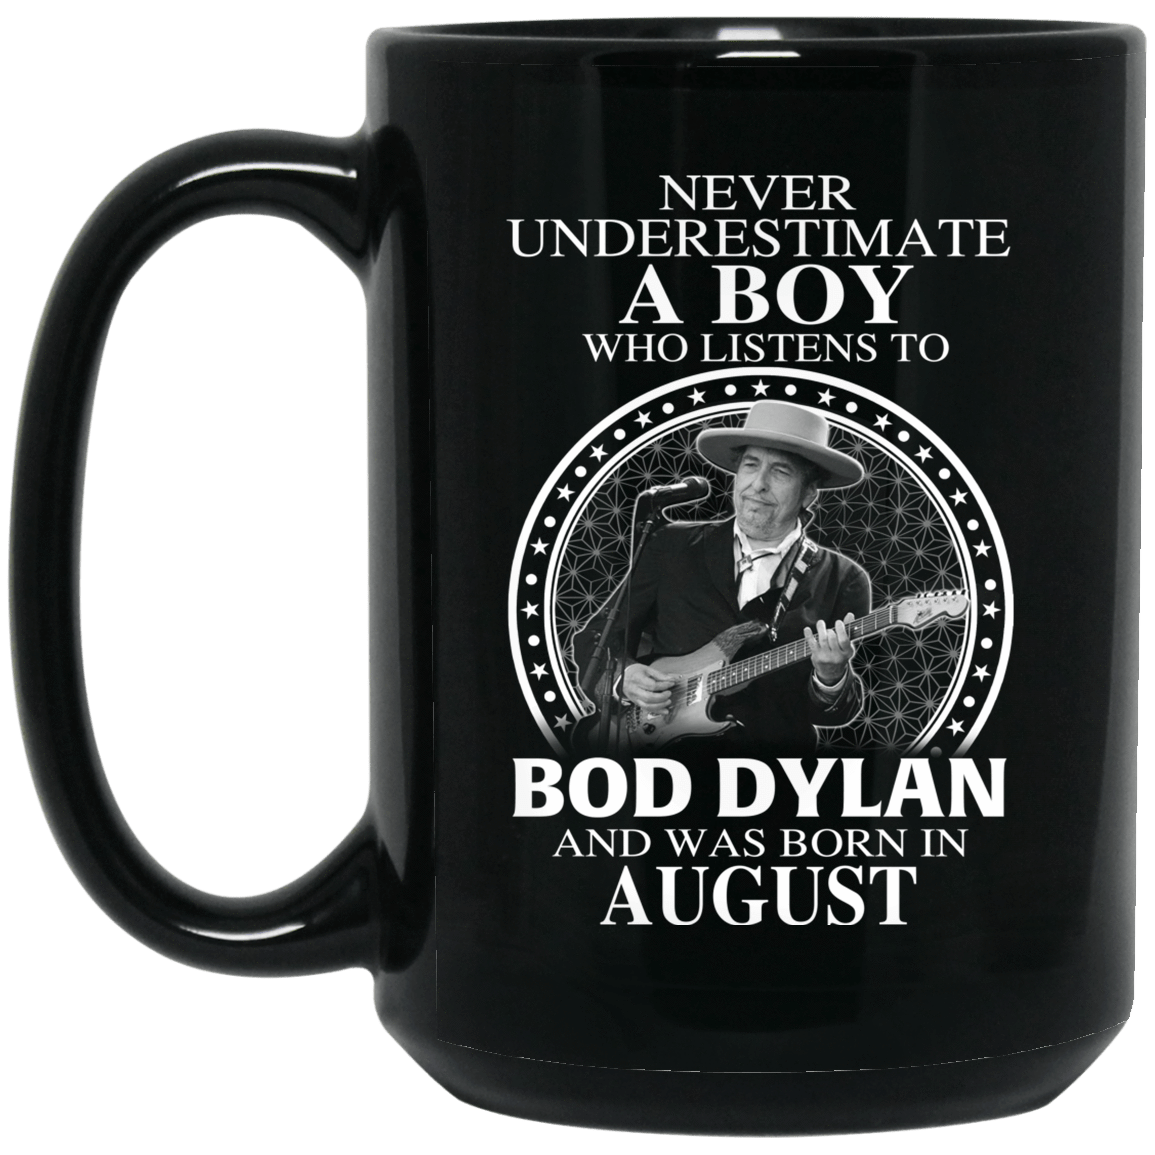 A Boy Who Listens To Bob Dylan And Was Born In August Mug 1066-10182-76153801-49311 - Tee Ript